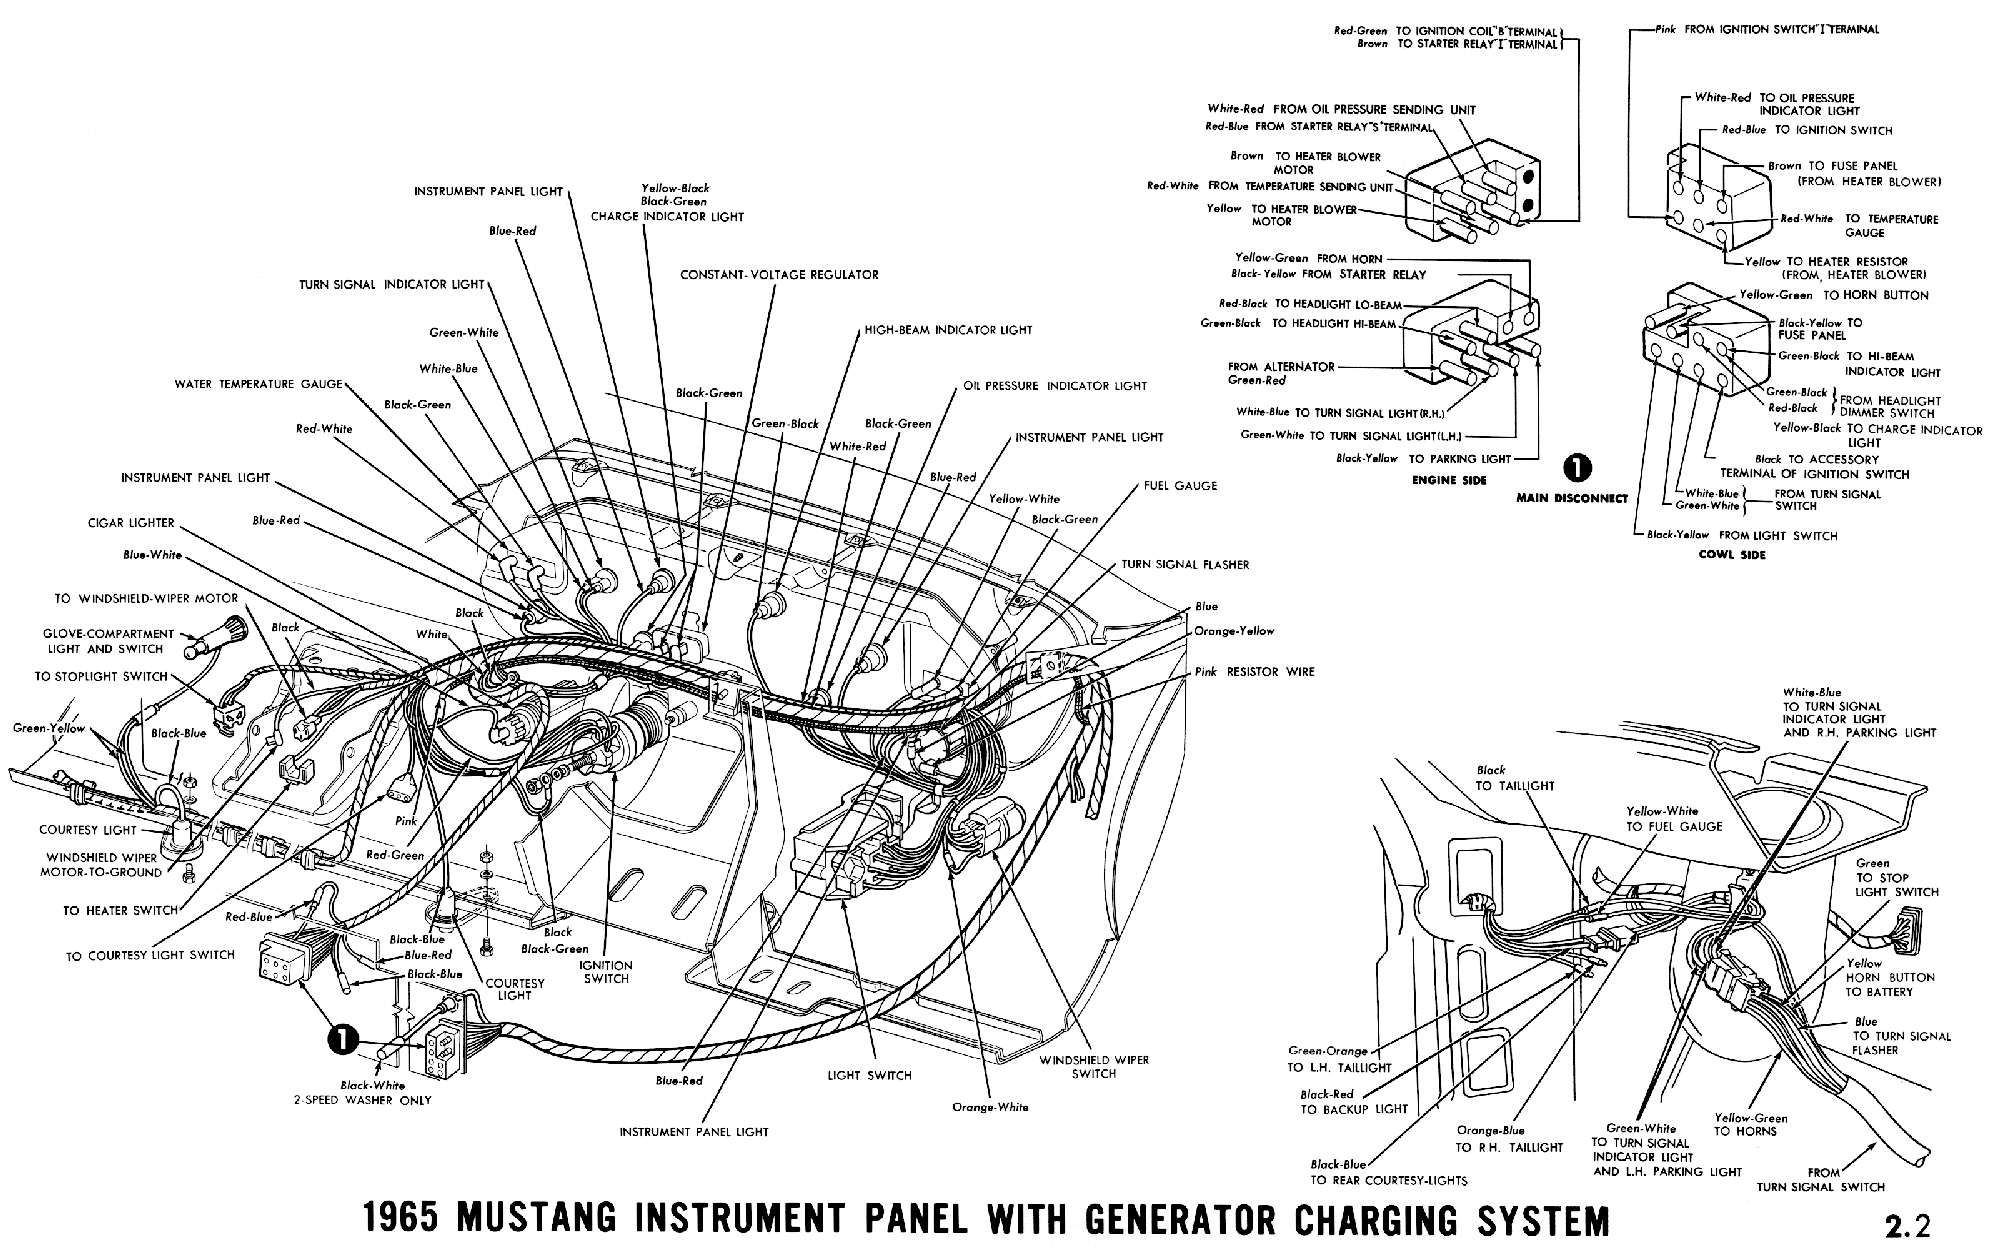 1965 Chrysler Wiring Diagram Engine Omc Kill Switch Corvair Ford Mustang Instrument Panel Alternator Charging System Diagrams Average